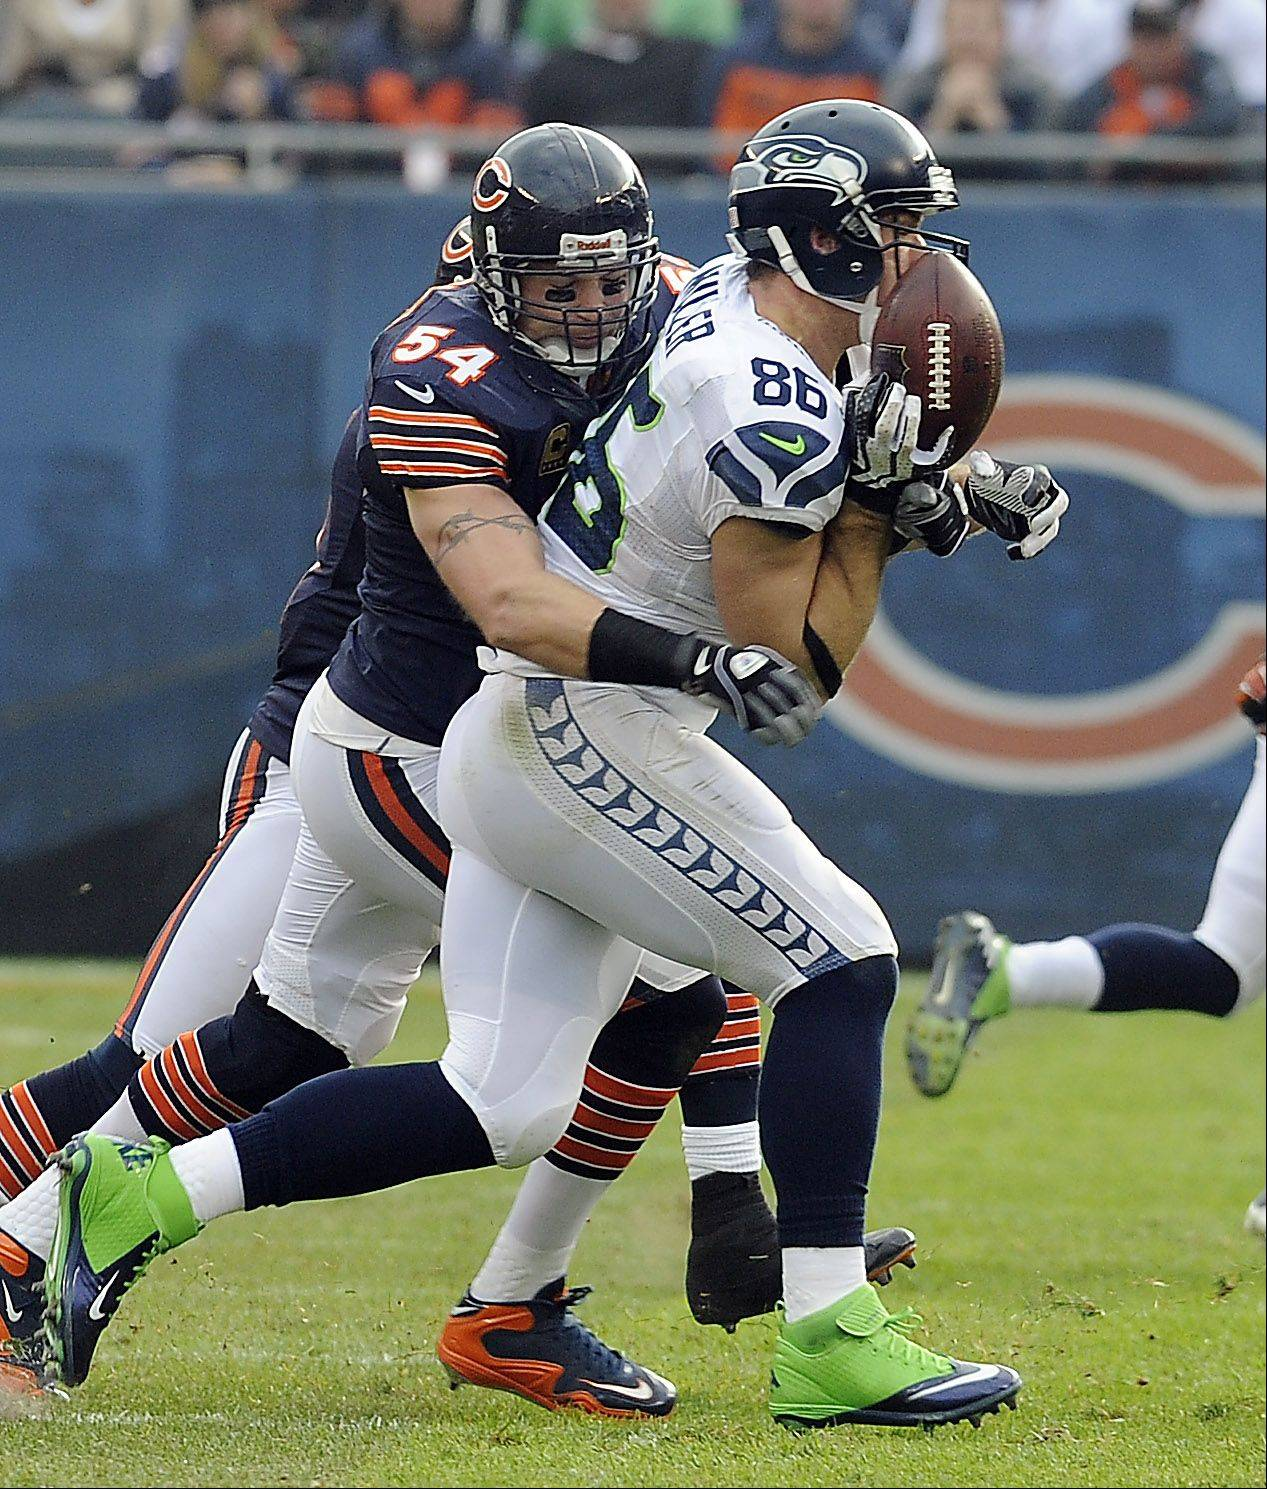 Mark Welsh/mwelsh@dailyherald.comBears Brian Urlacher puts the hit on Seahawks Zach Miller in the second half at Soldier Field in Chicago.